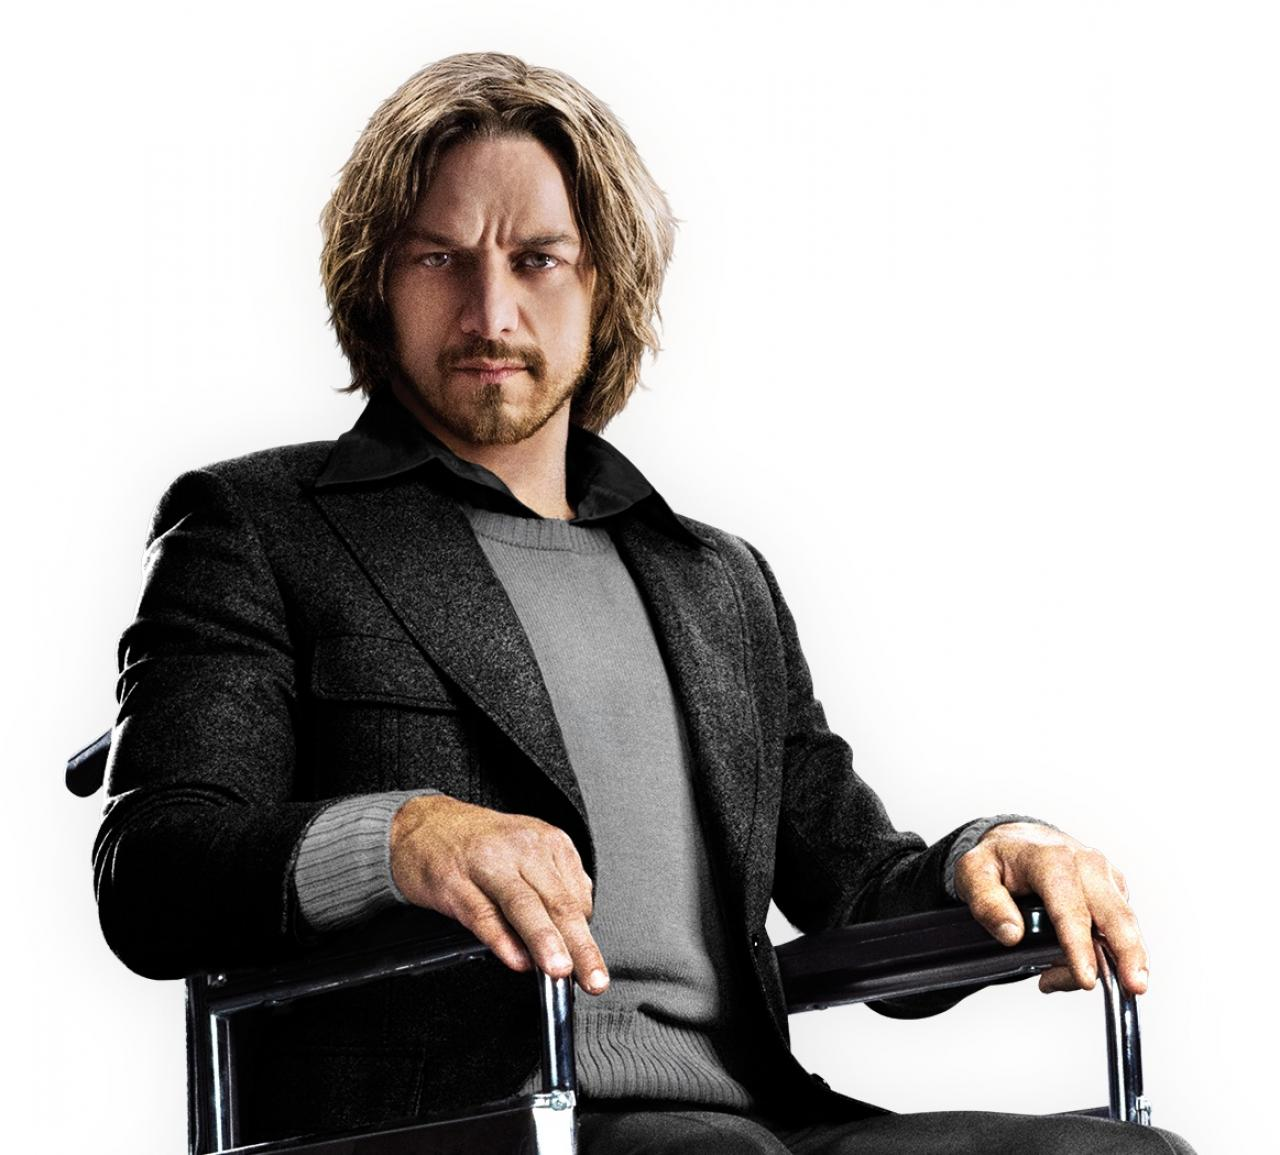 X-Men Days of Future Past character photo - James McAvoy ... X Men Days Of Future Past Professor X